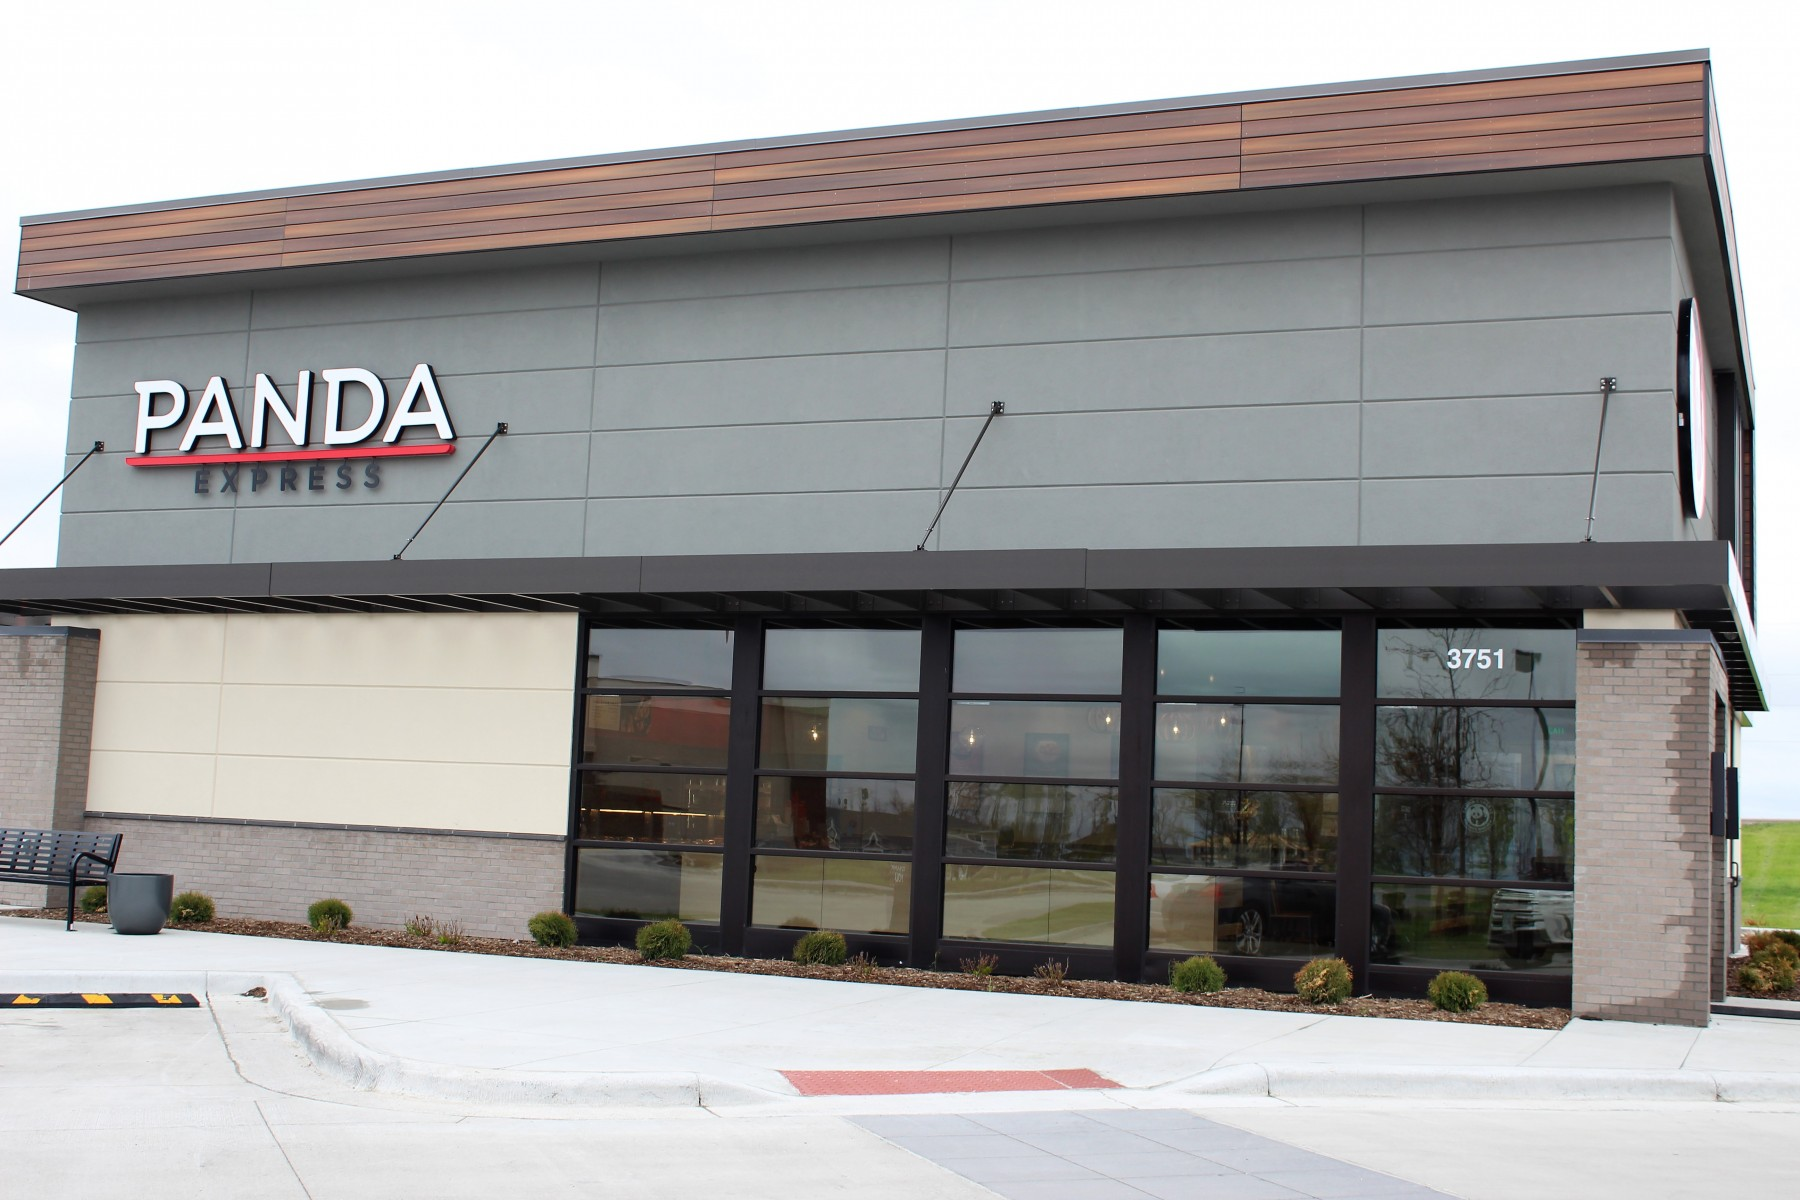 Stucco and brick work by OTXteriors on exterior of Panda Express in Fargo North Dakota